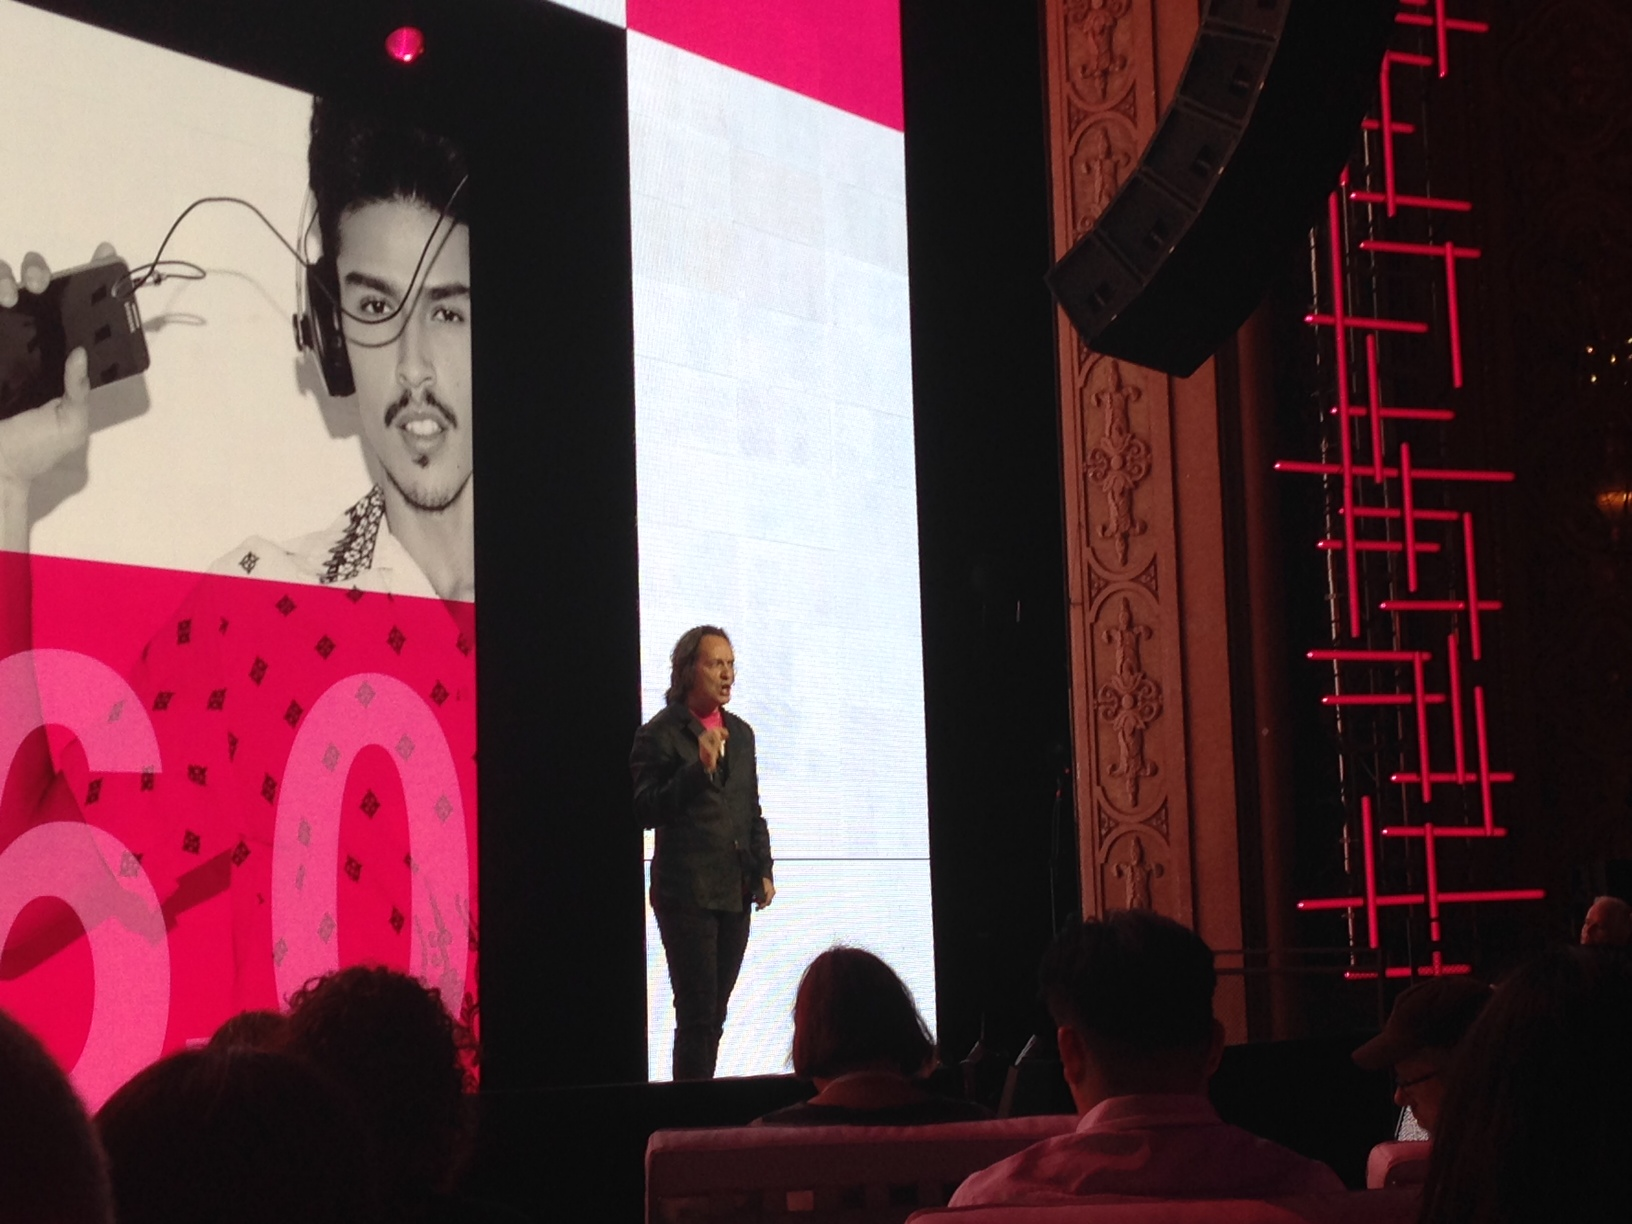 Legere at Uncarrier 5.0 (Source: Kevin Fitchard / Gigaom)